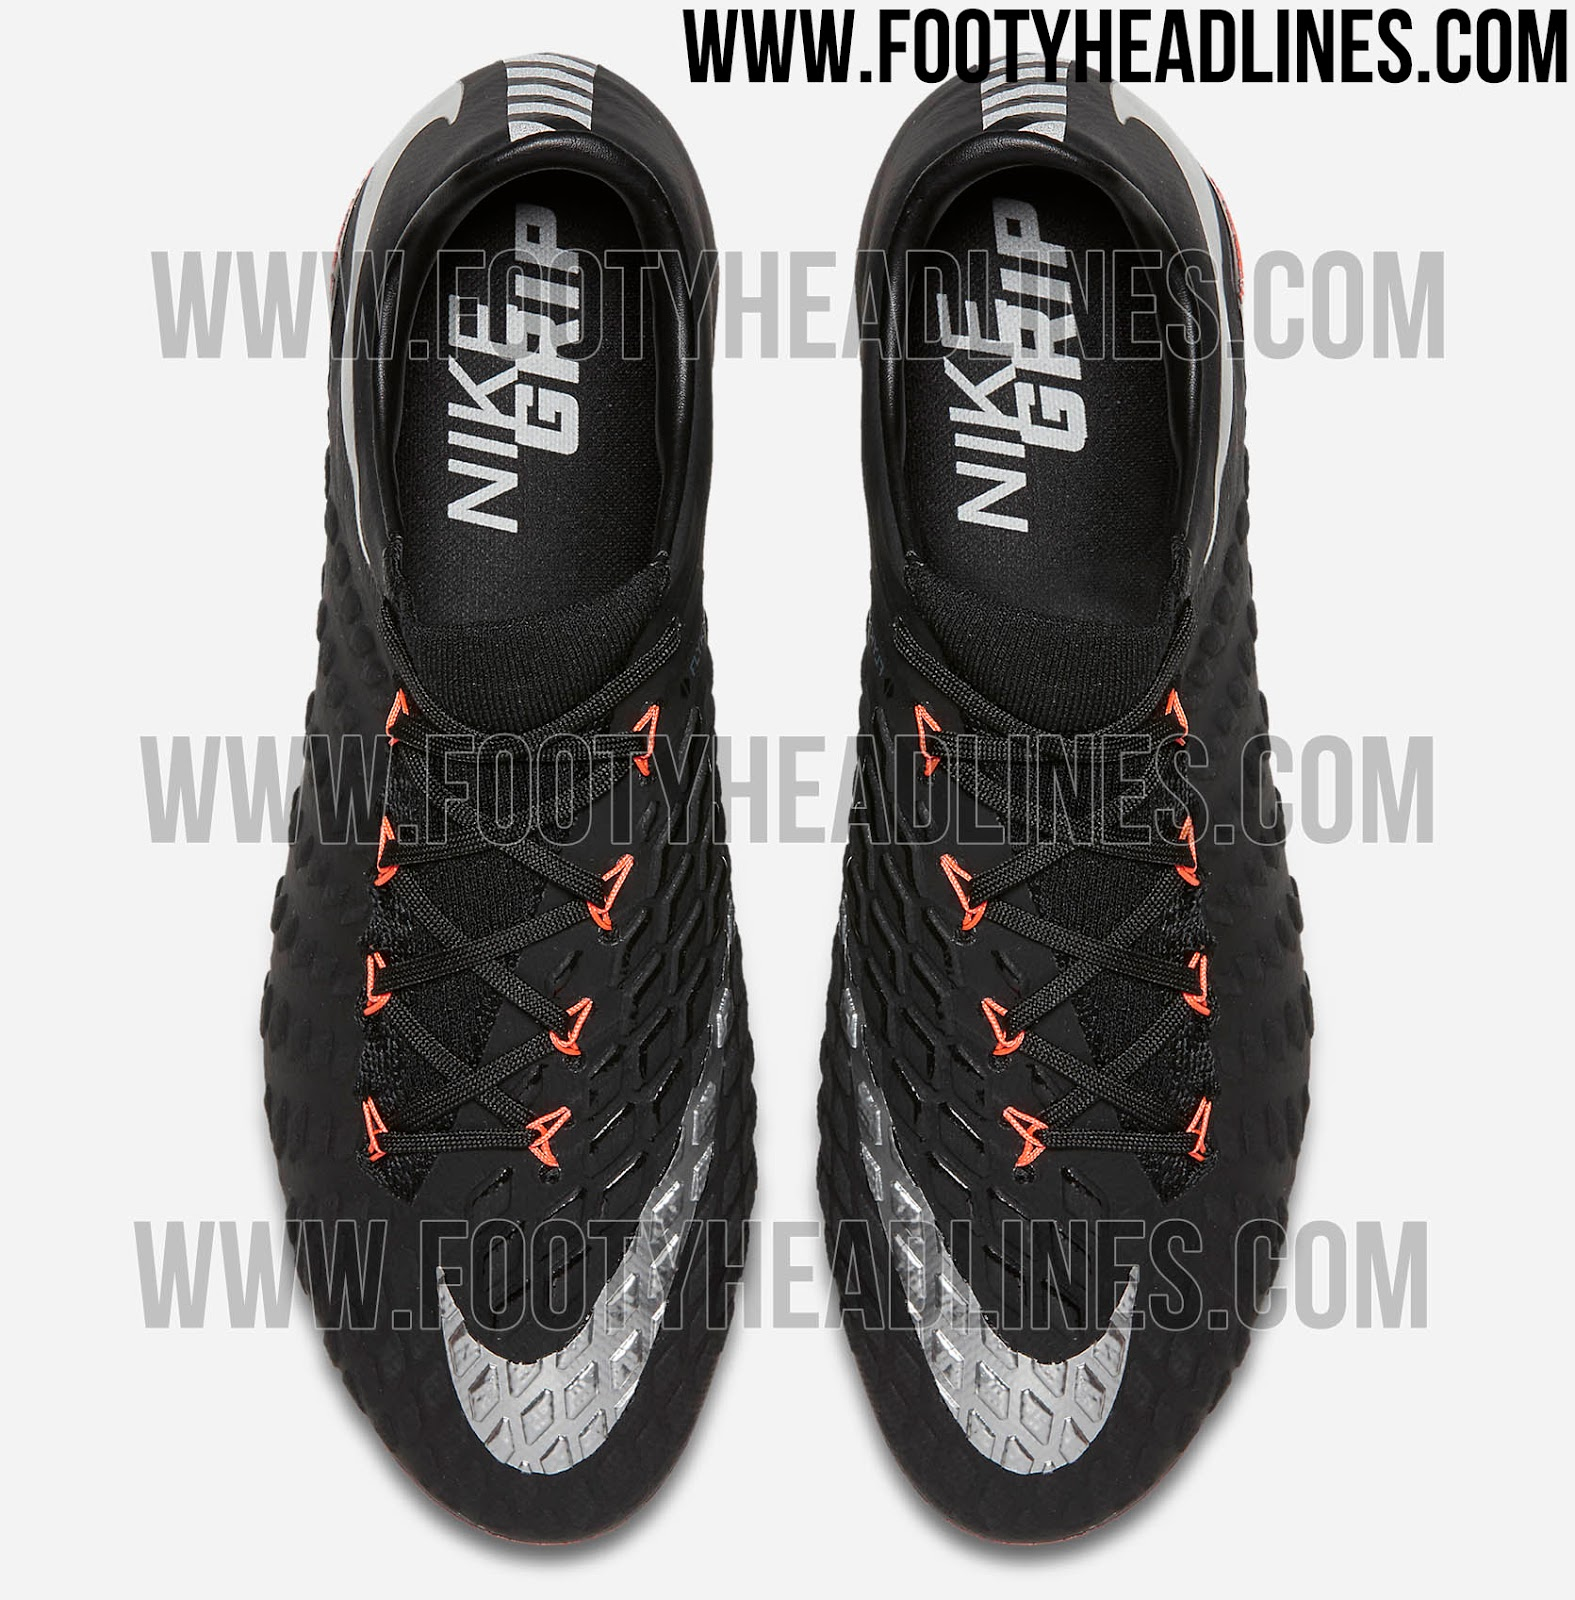 Nike Hypervenom Phantom III FG - Black/Metallic Silver-Black-Anthracite-Total Crimson